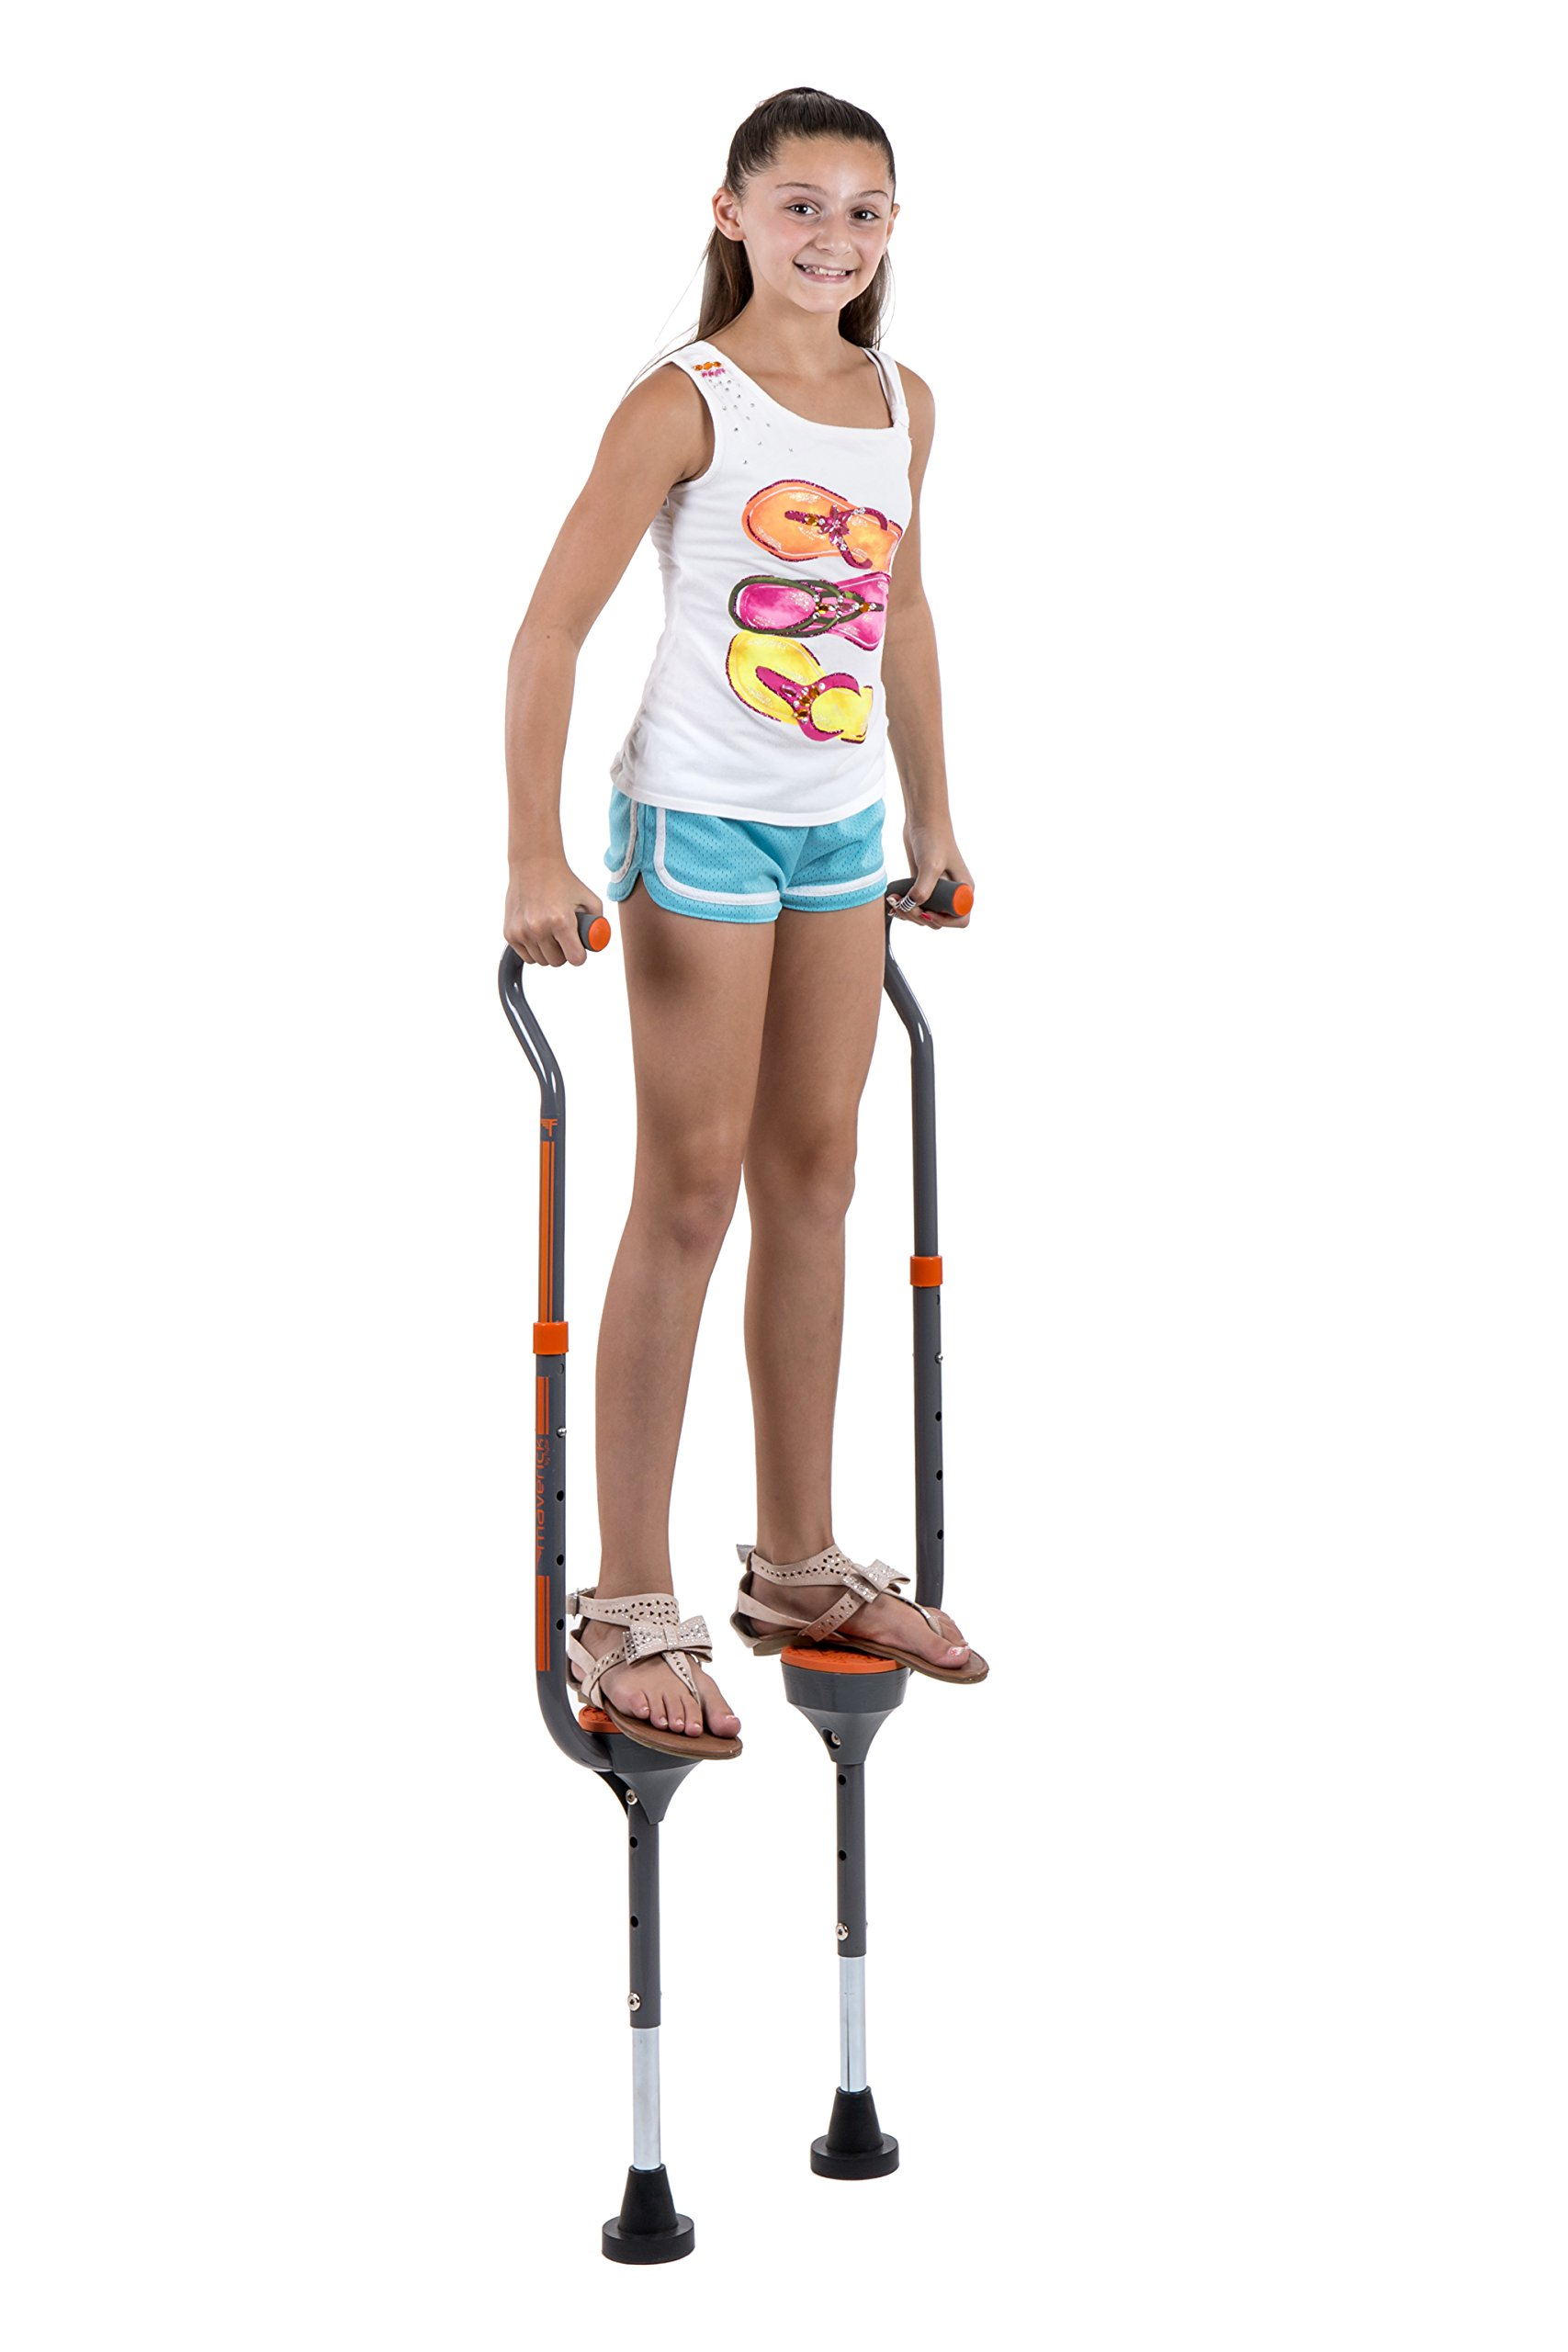 Flybar Maverick Walking Stilts for Kids Ages 5 +, Weights Up to 190 Lbs - Adjustable Foam Handles with Wide Stance Foot Pegs - Fun Outdoor Toys for Girls & Boys